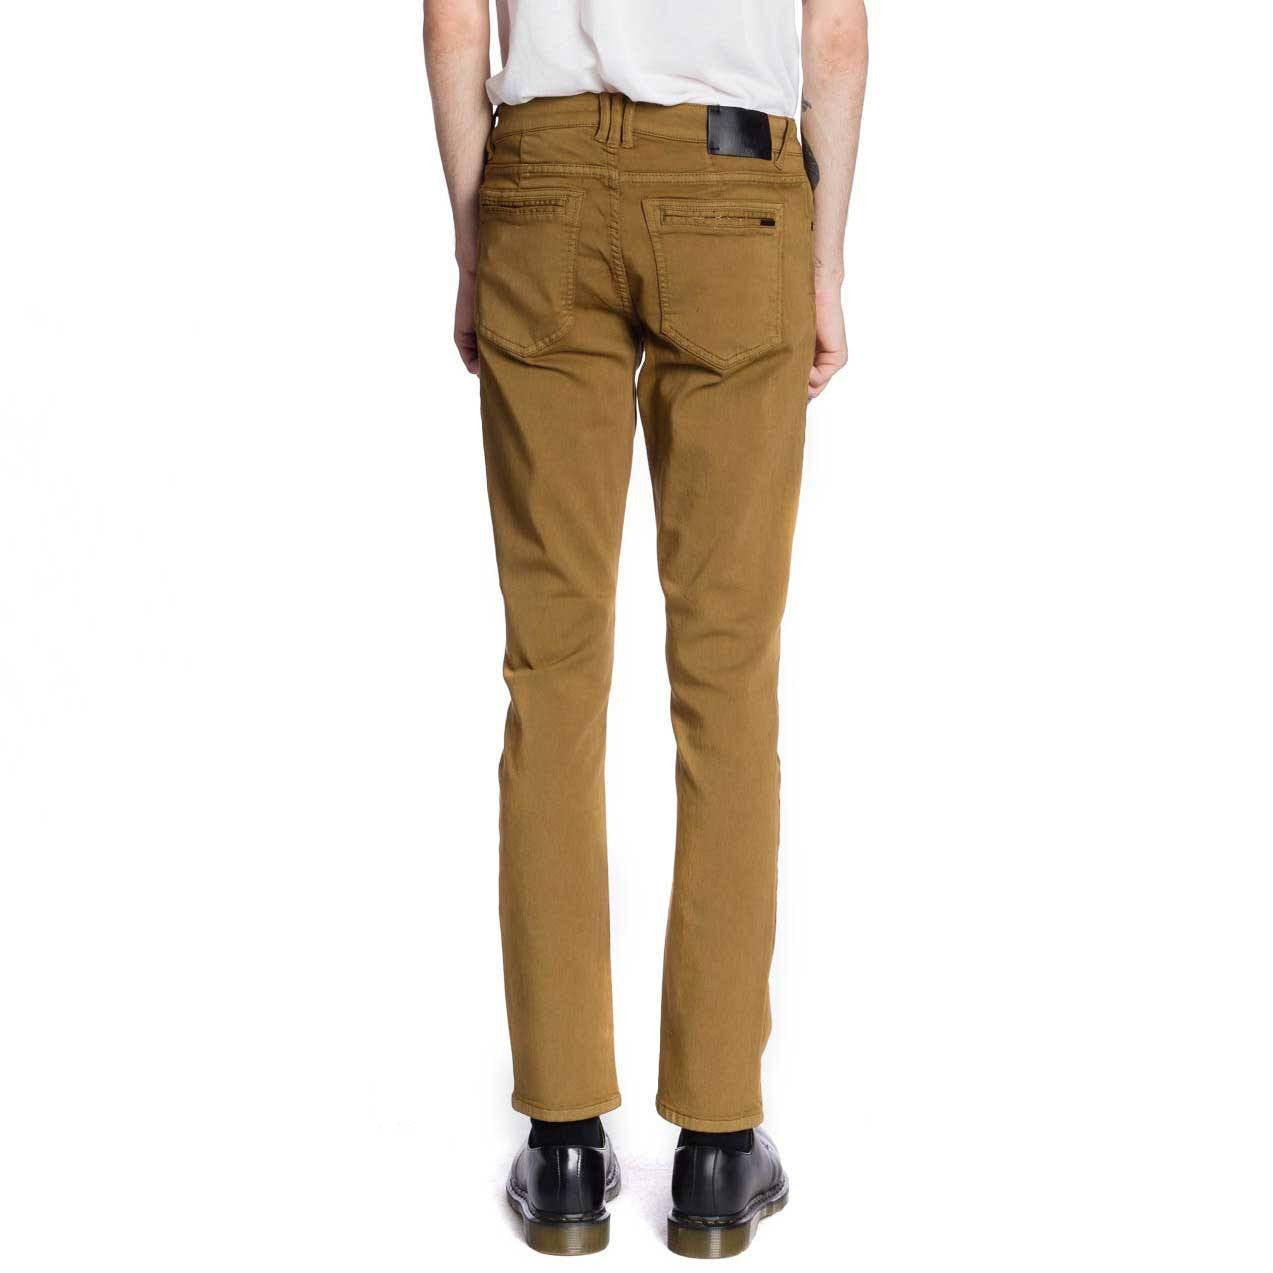 NOW Denim - Boothill Brown